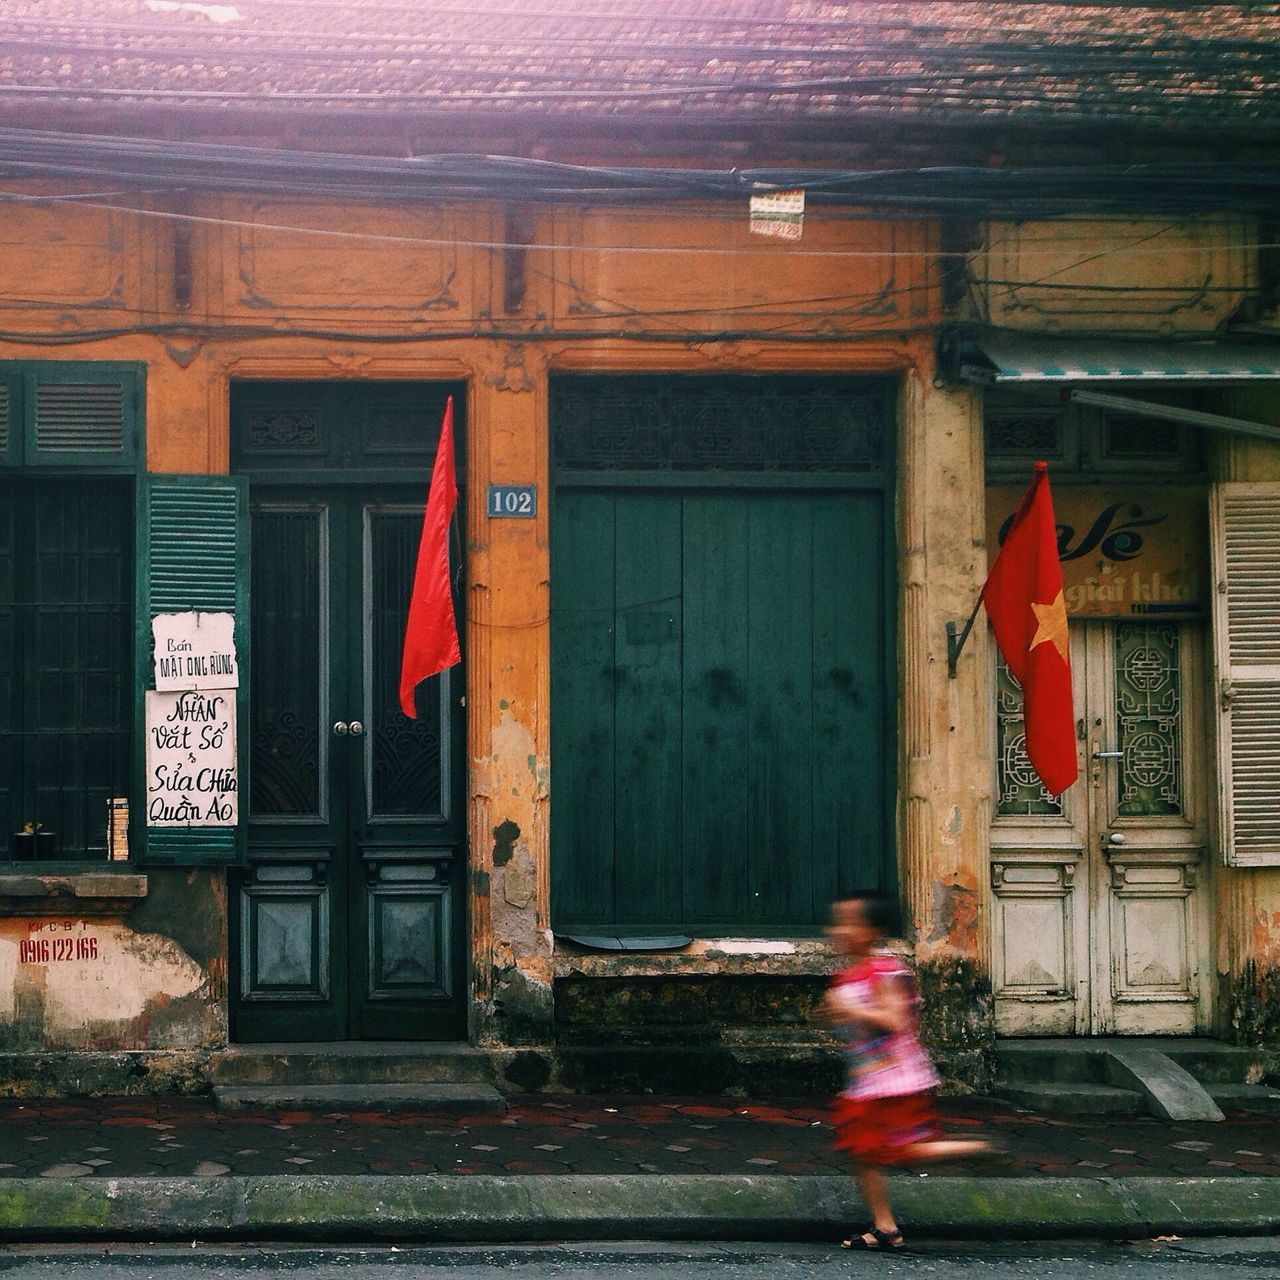 Side view of a blurred girl running against house